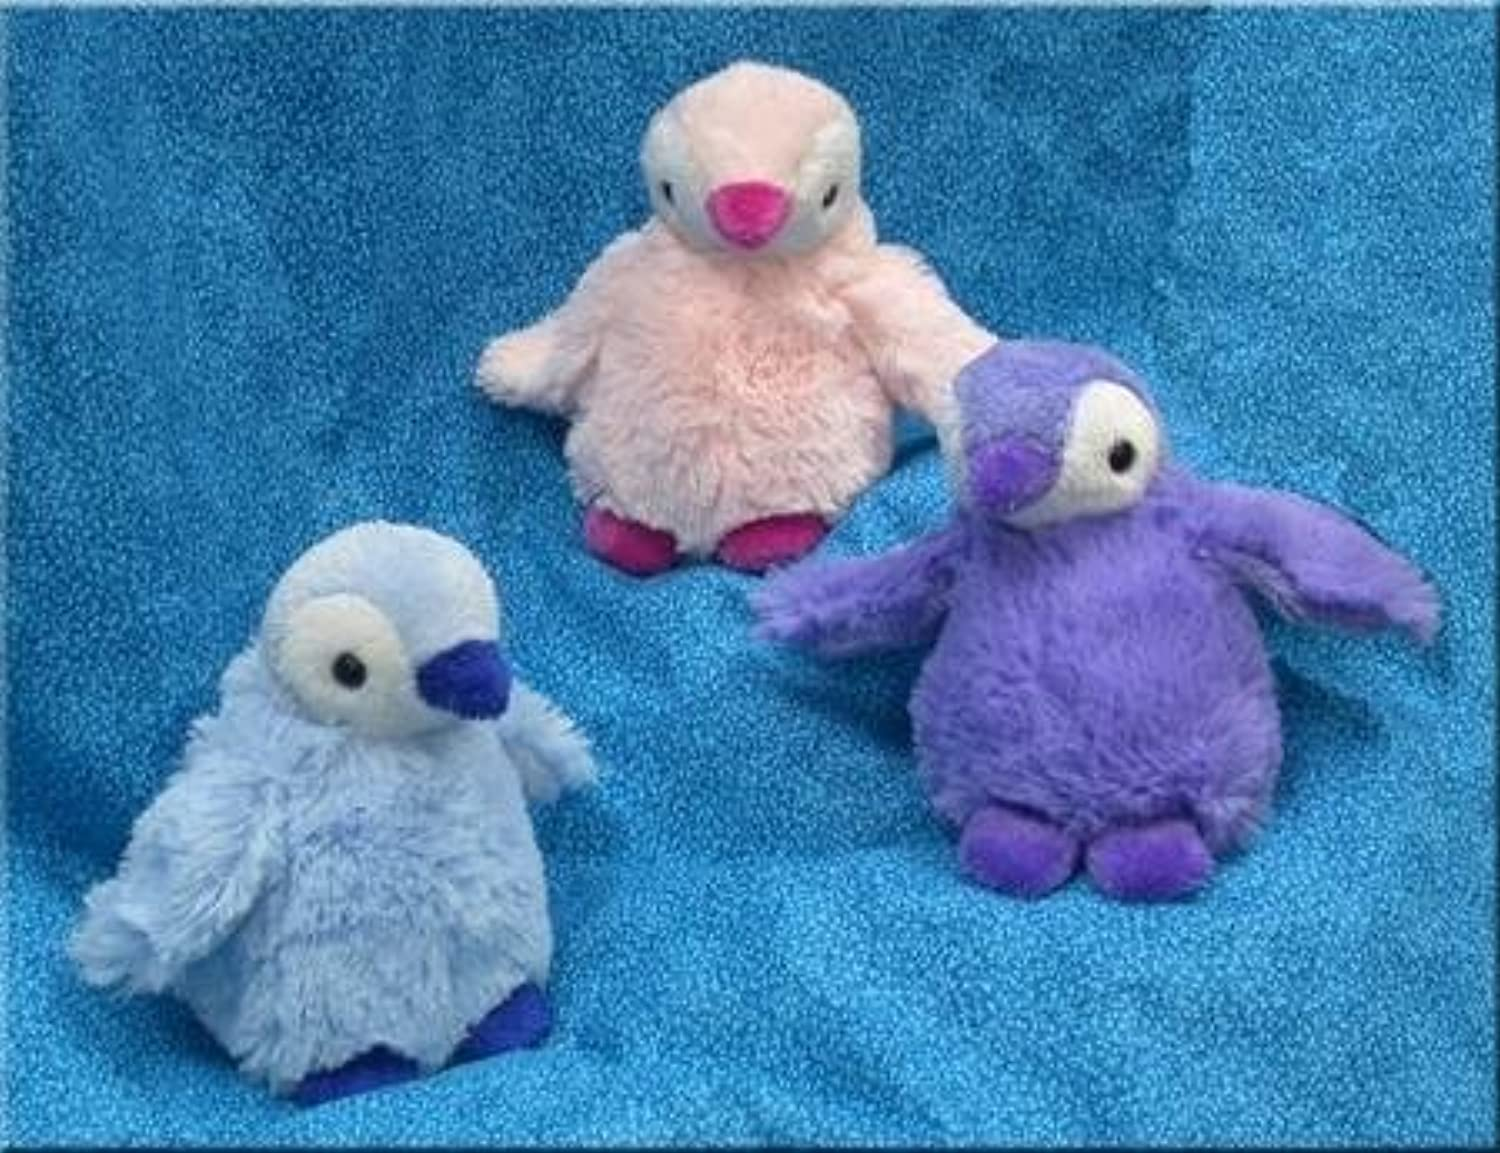 Wishpets 5 bambino Penguin Plush giocattolo (Assorted of 3) by Wishpets